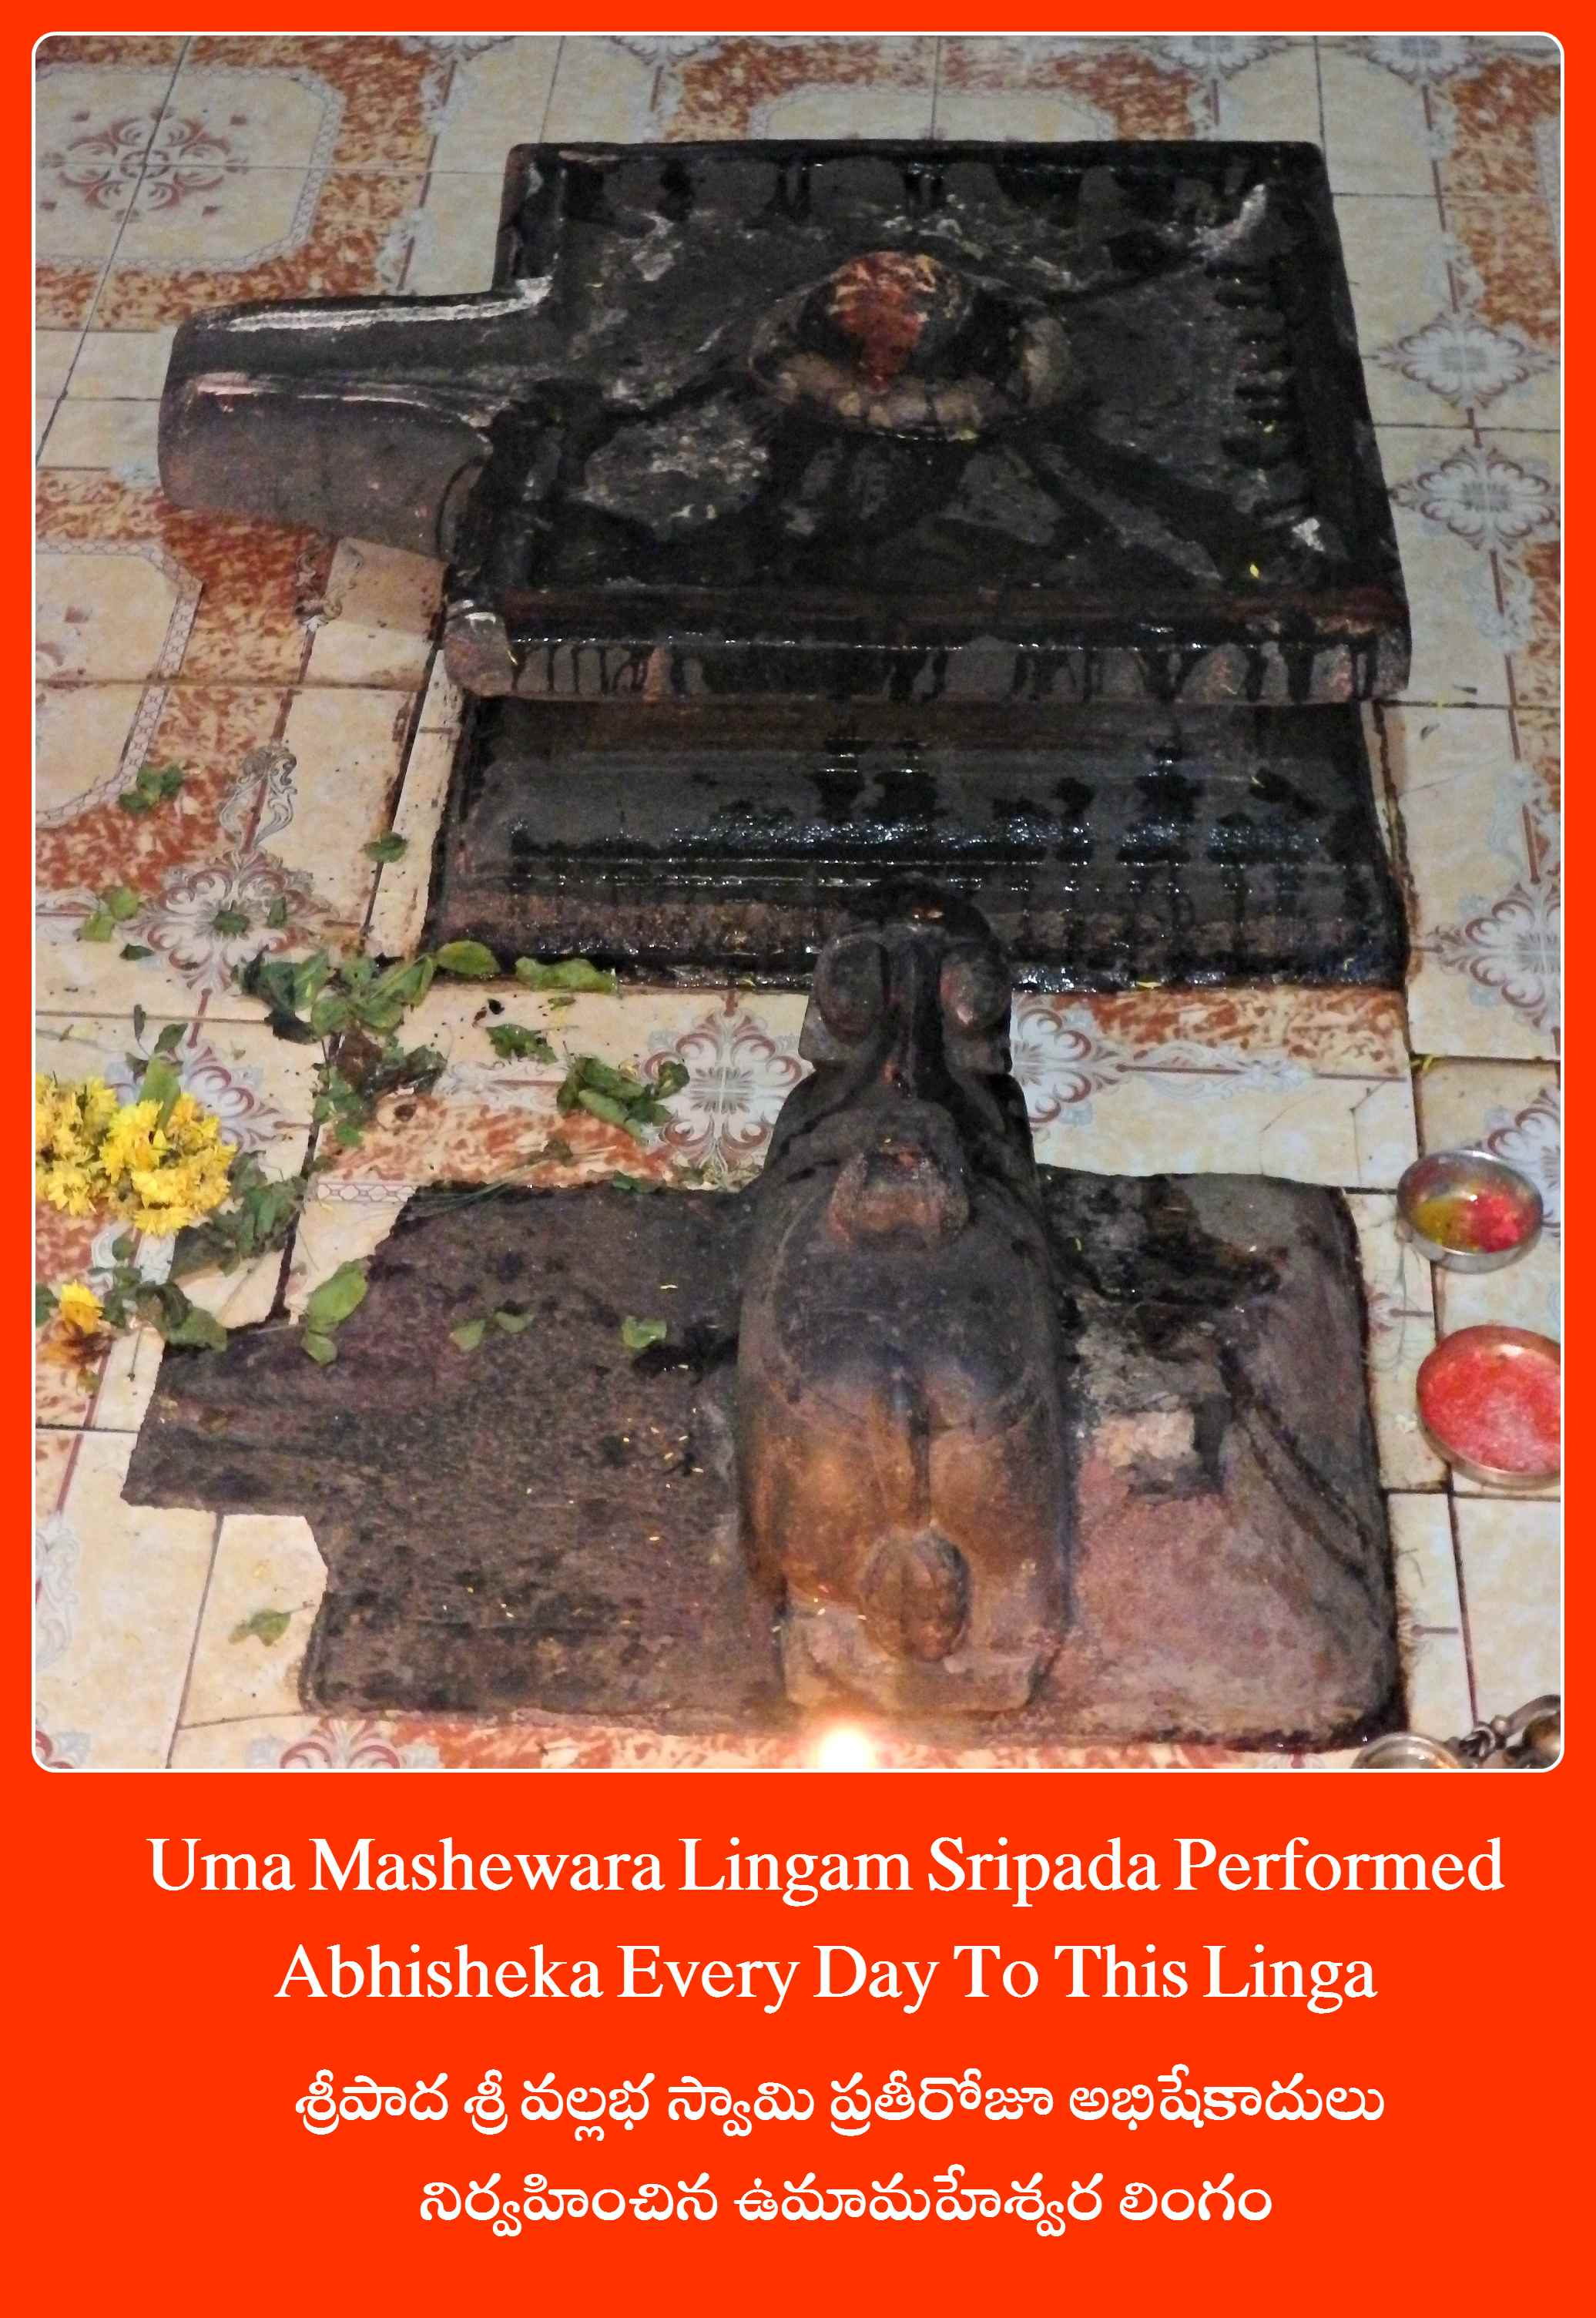 Uma Mashewara Lingam Sripada Performed Abhisheka Every Day To This Linga